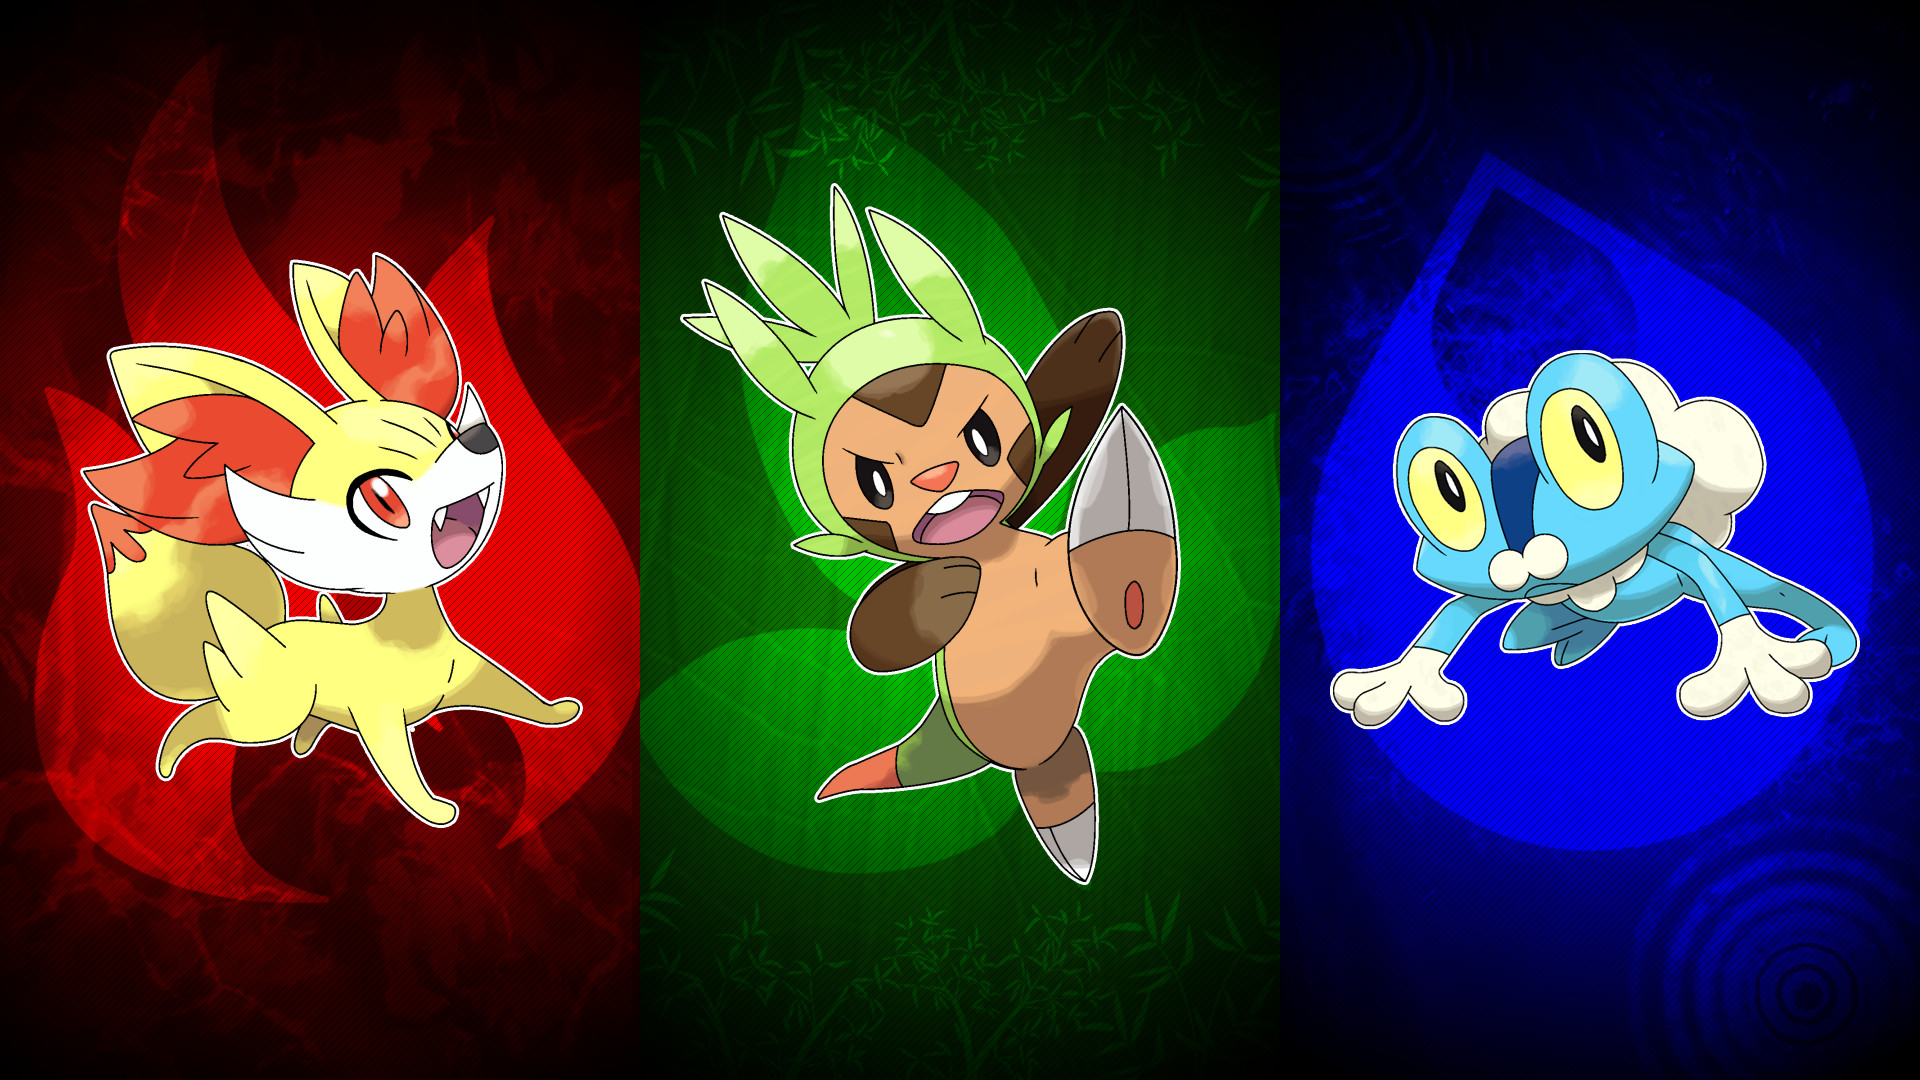 … Pokemon X and Y Starters Wallpaper by UnlethalMango